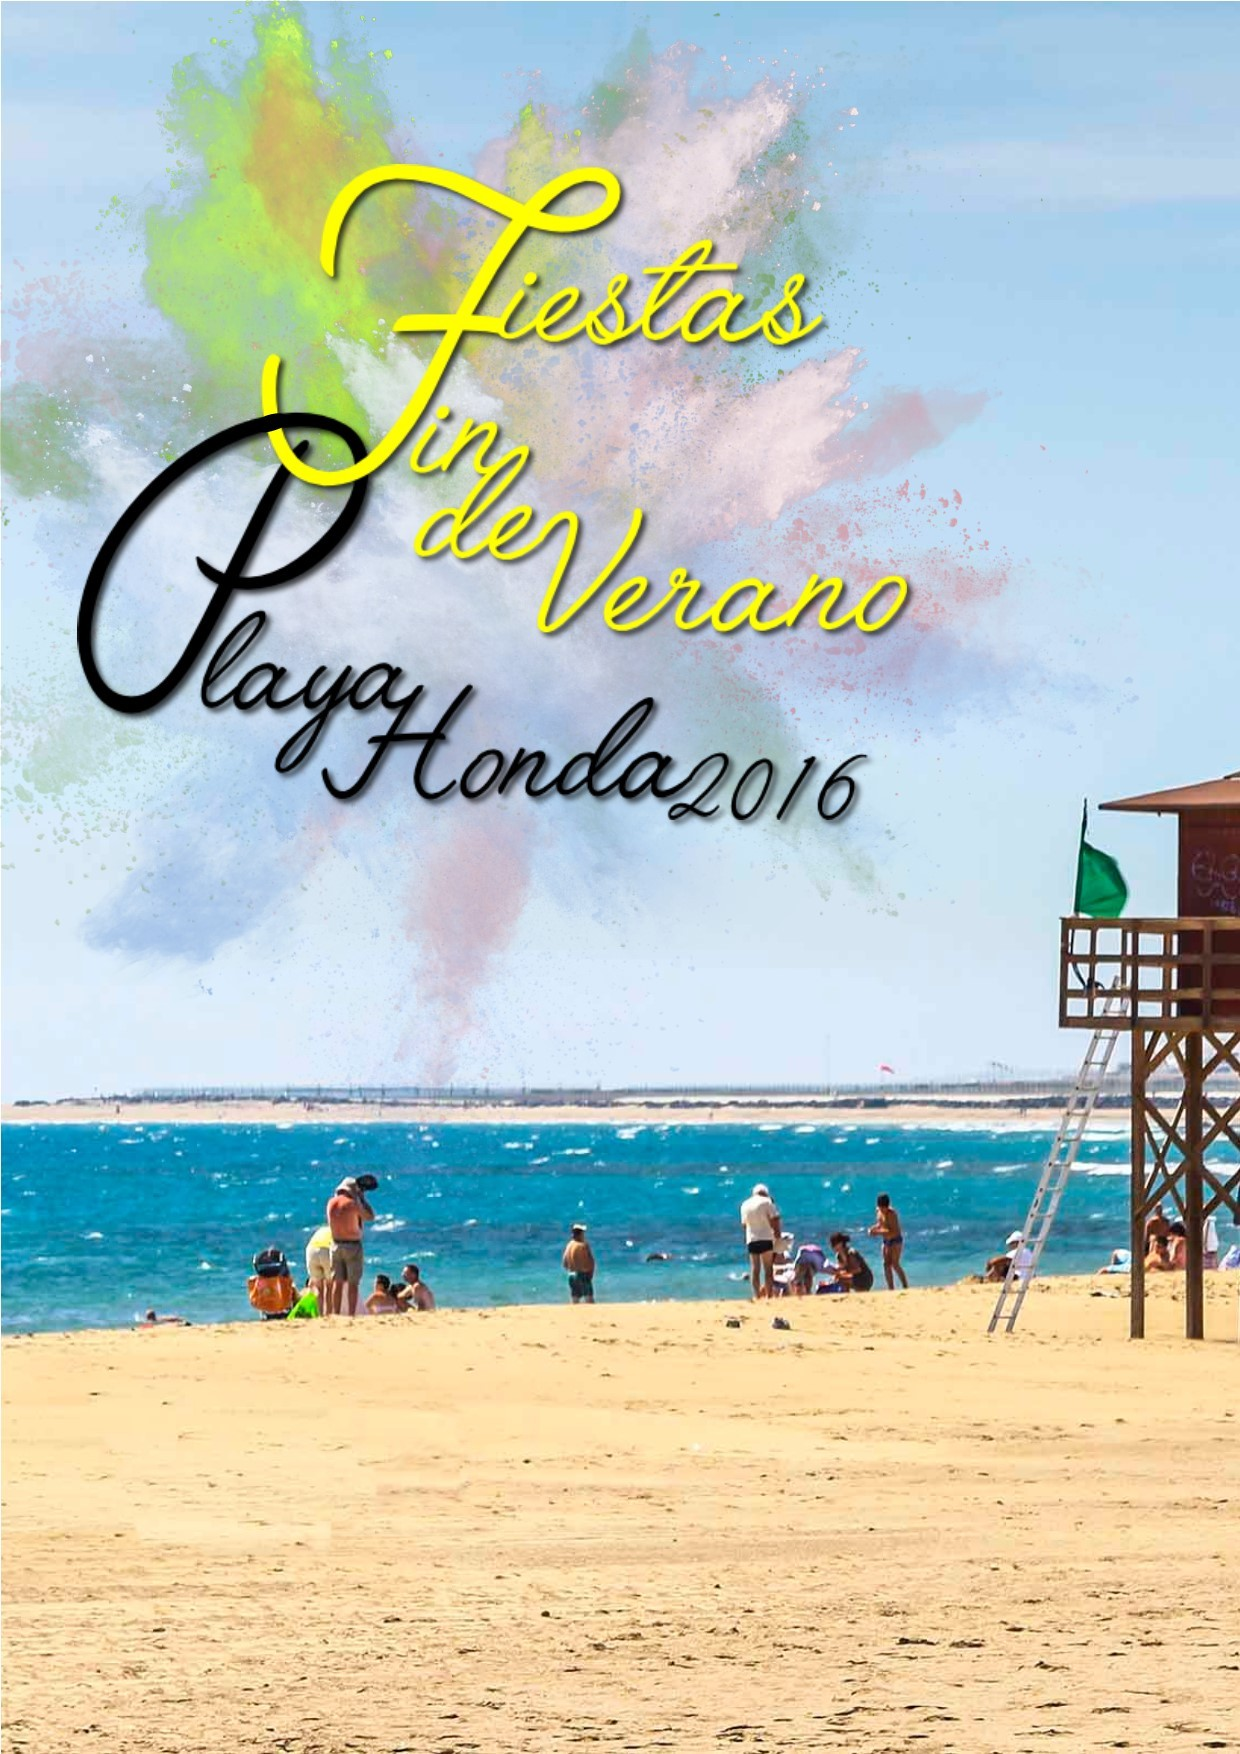 14 Things to Do This Weekend in Lanzarote.